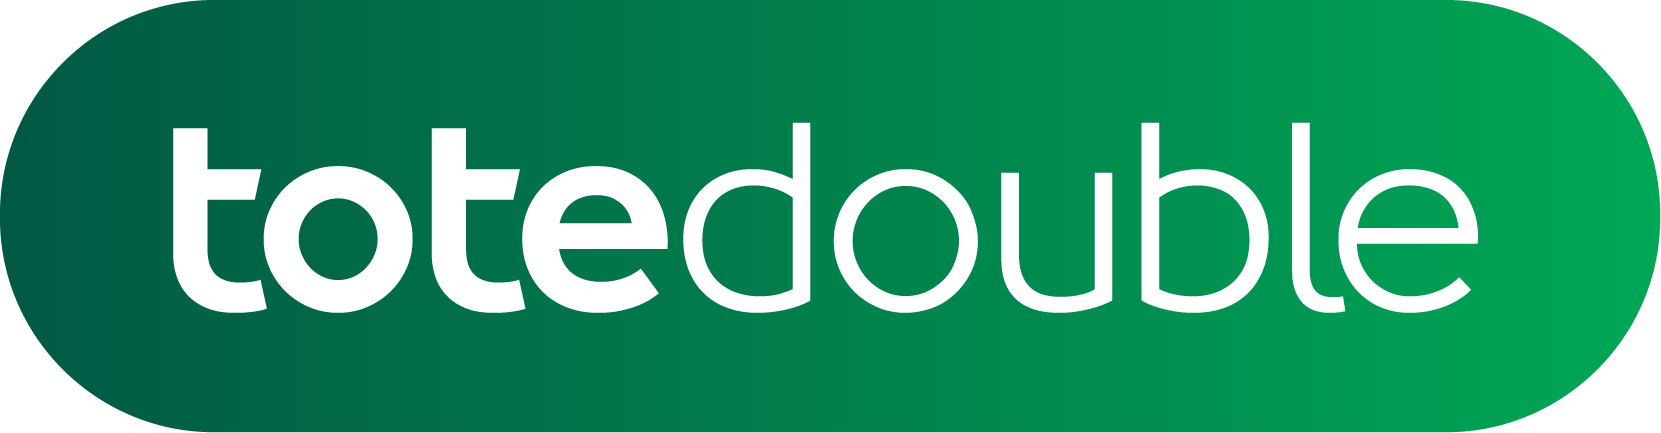 logo-totedouble-primary.png